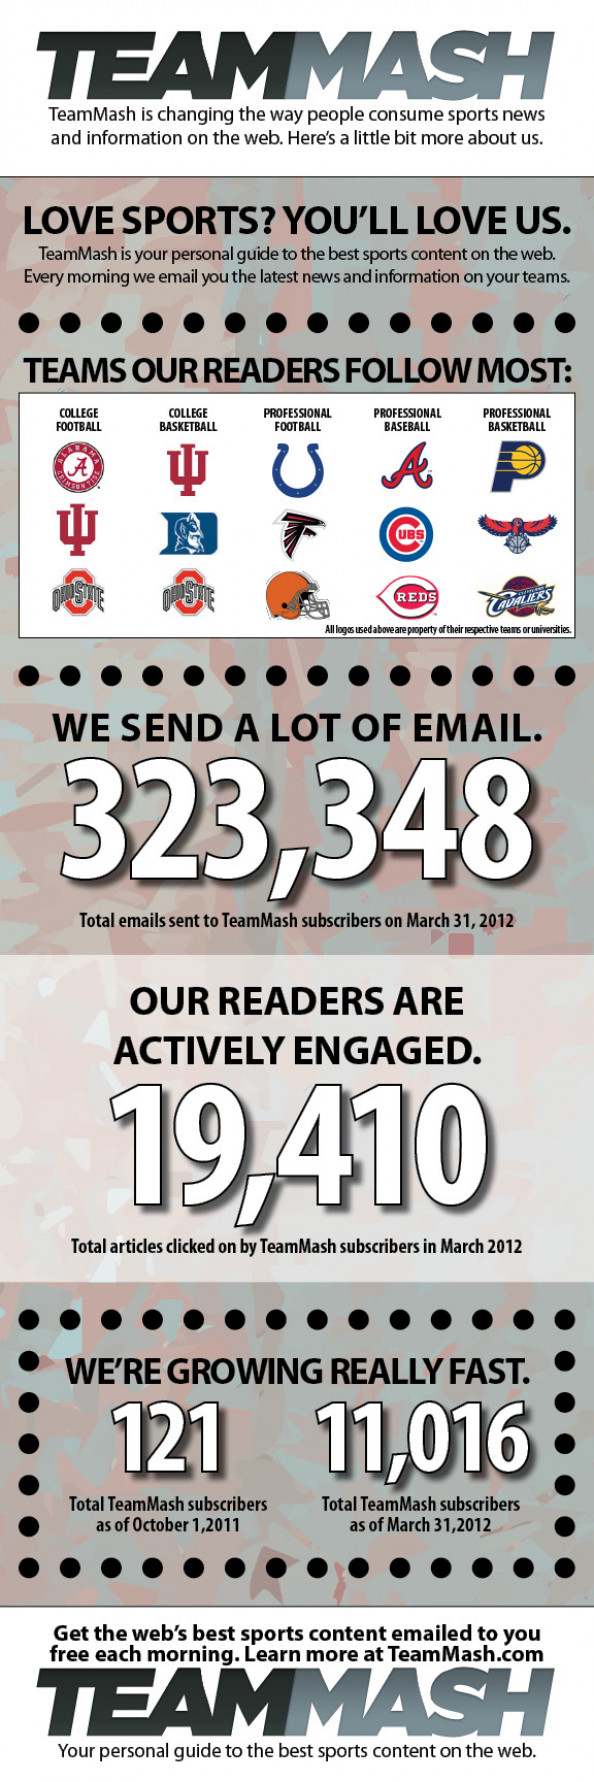 TeamMash March 2012 Infographic